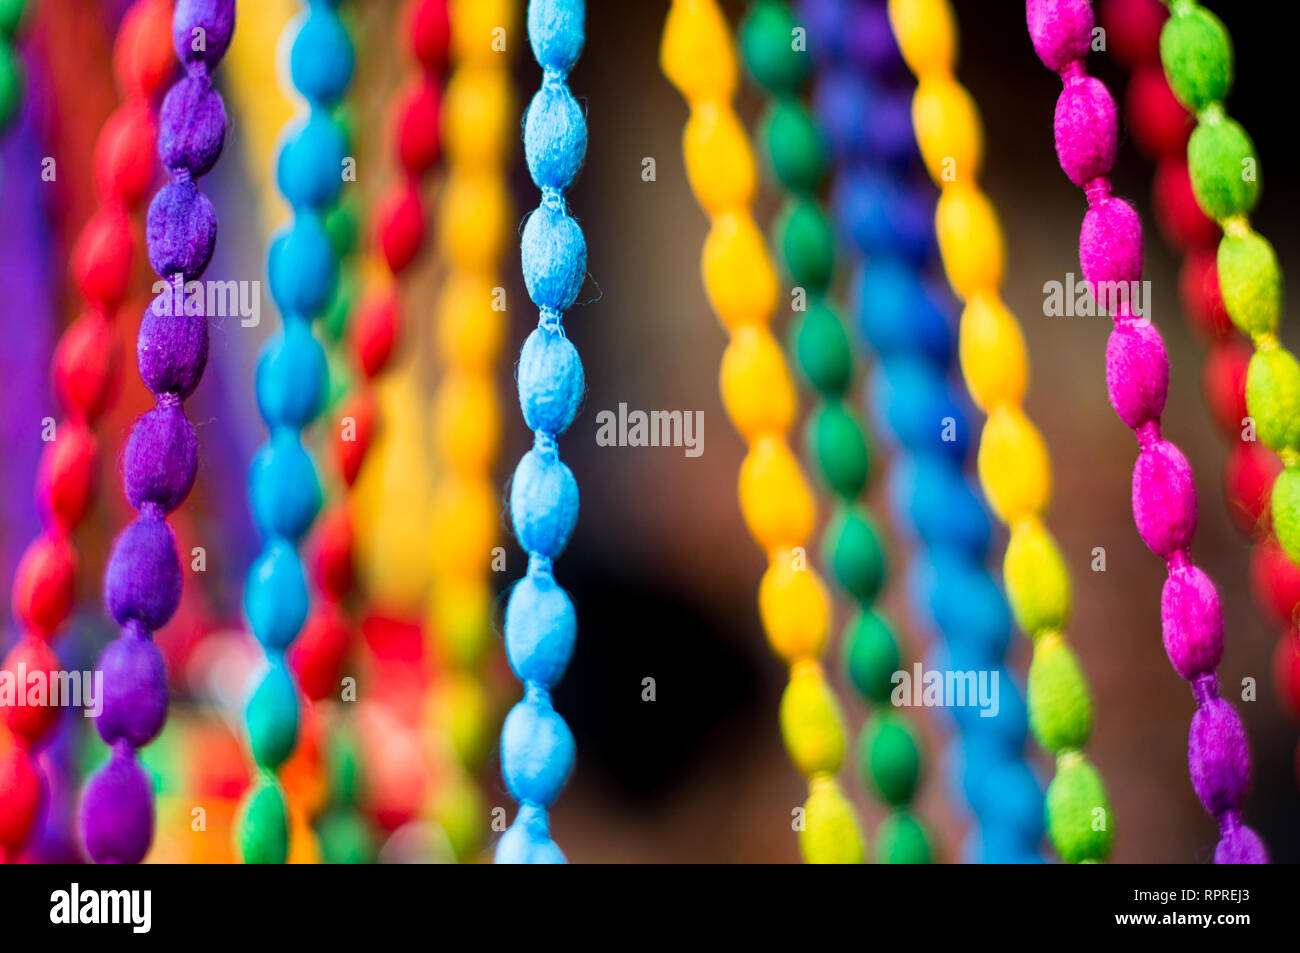 Multicolored braided strings hanging tight with a blurred background - Stock Image